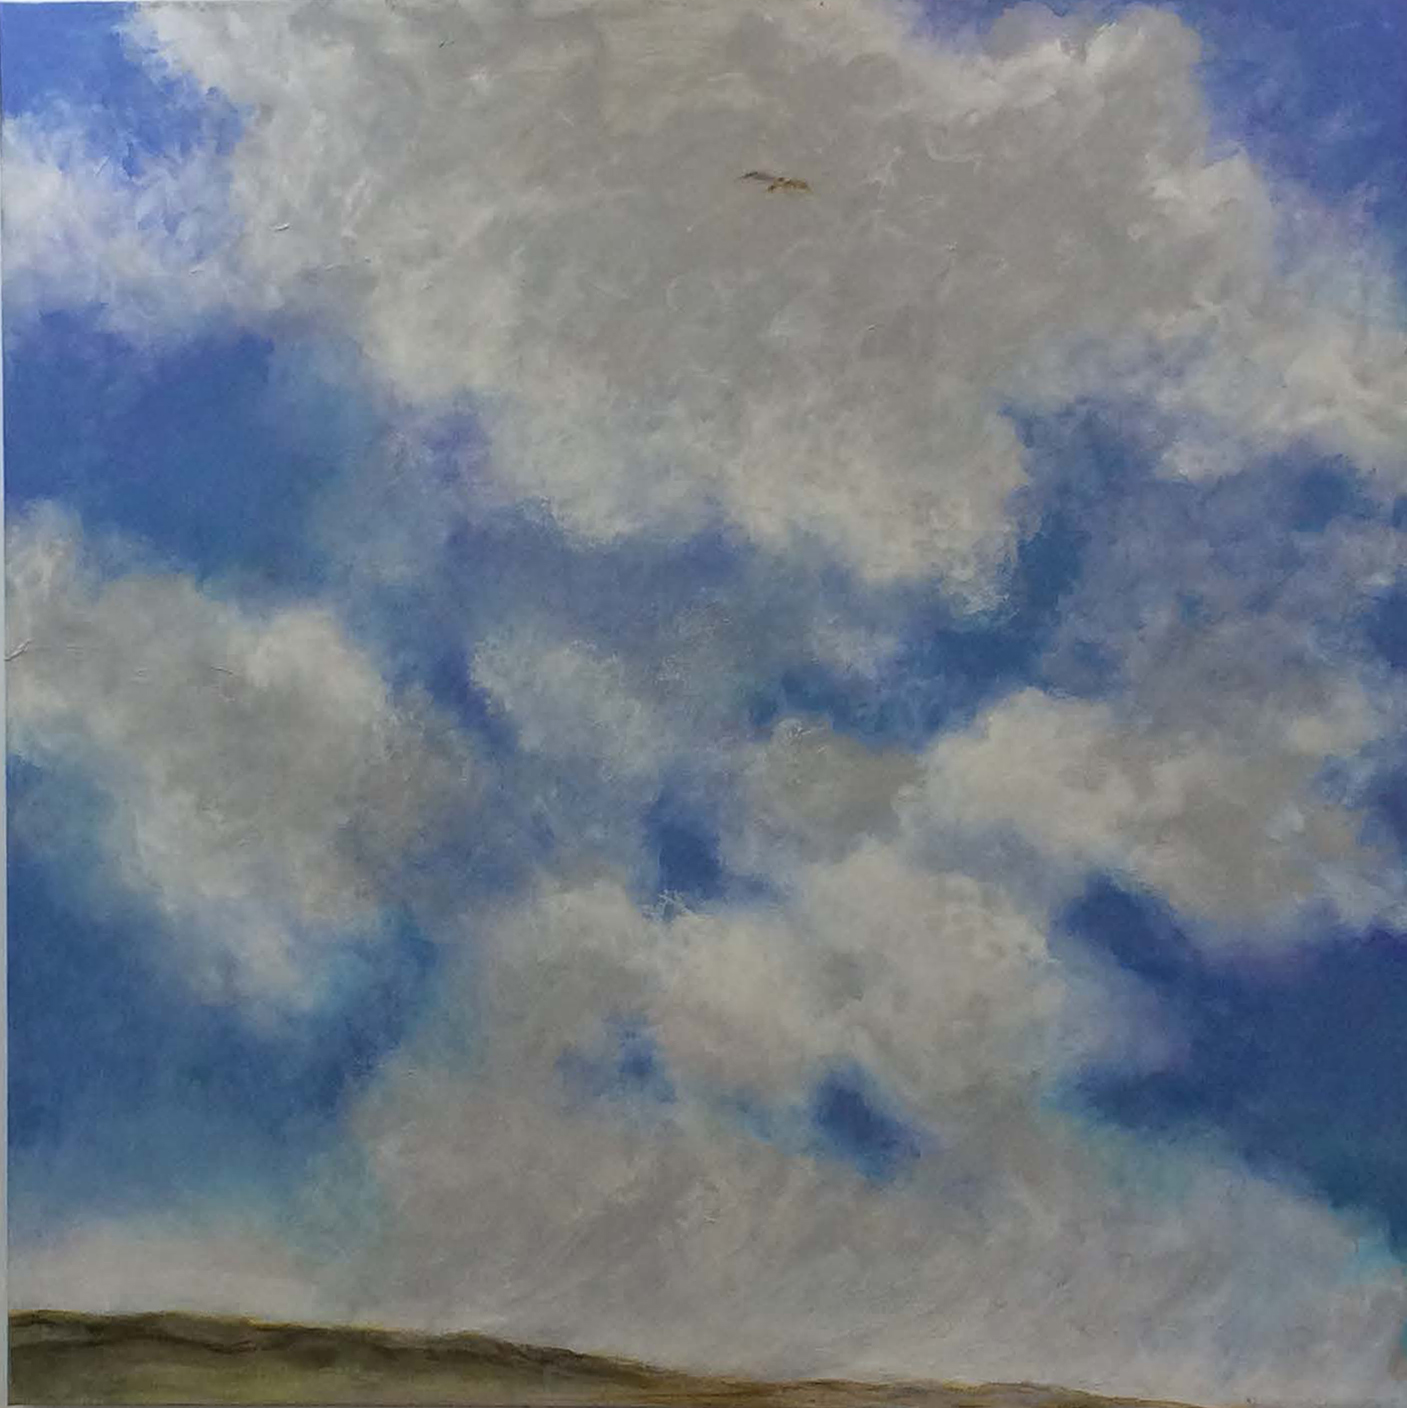 Hawk and the Cloud. 2014-19.  Acrylic and oil on canvas. 120 x 121 cm. $15,000